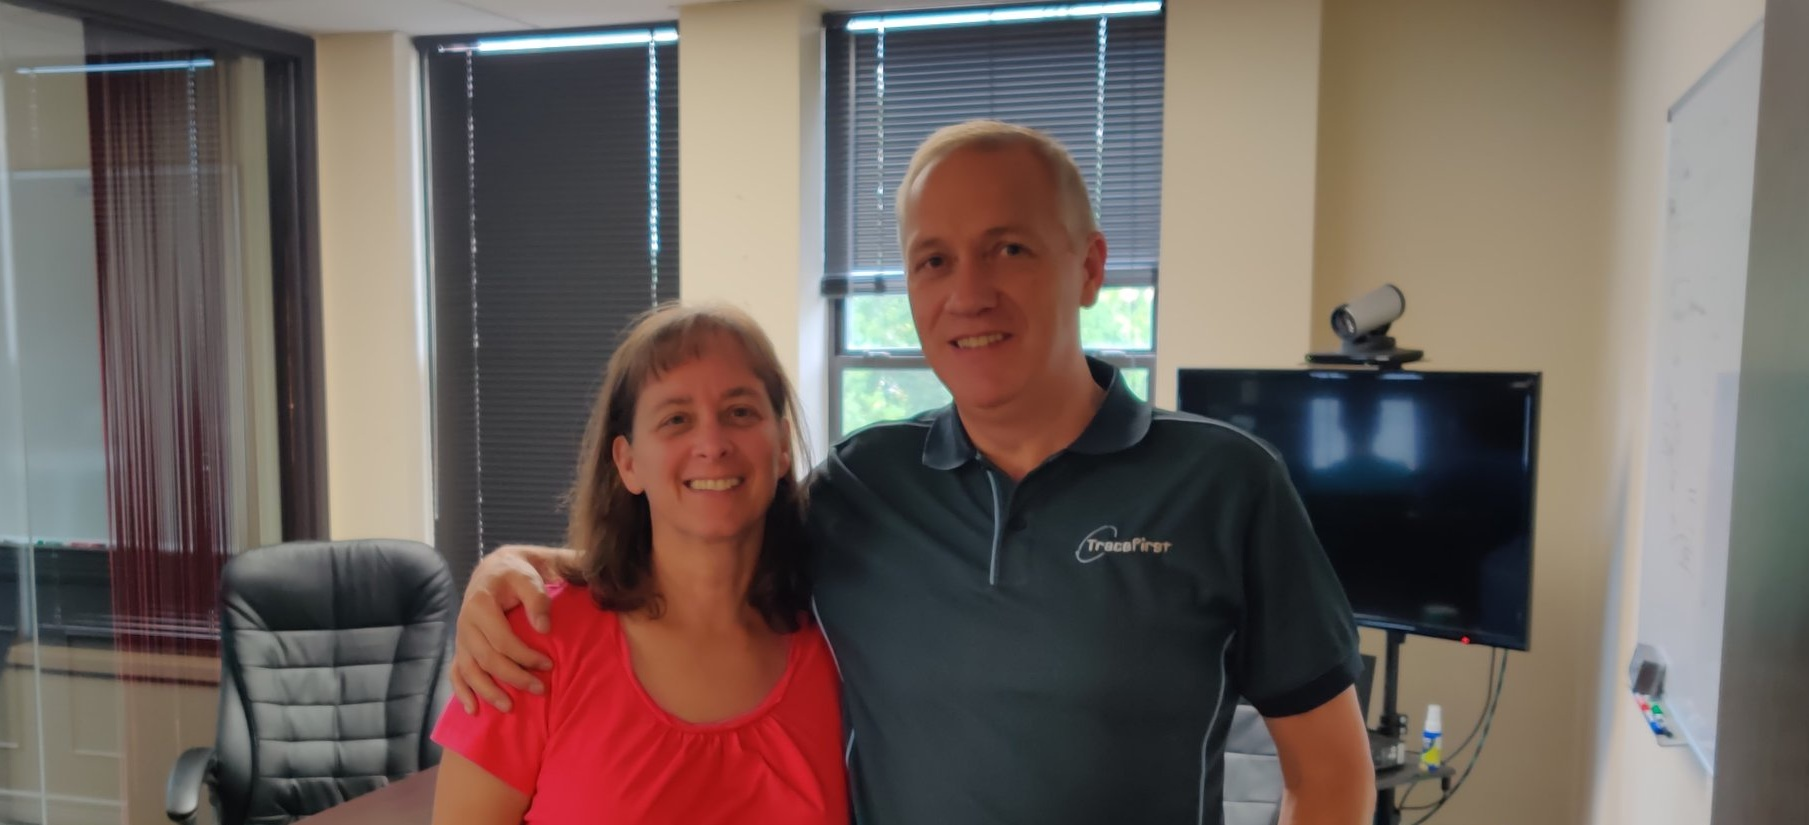 kathy_and_brian_aug_2019